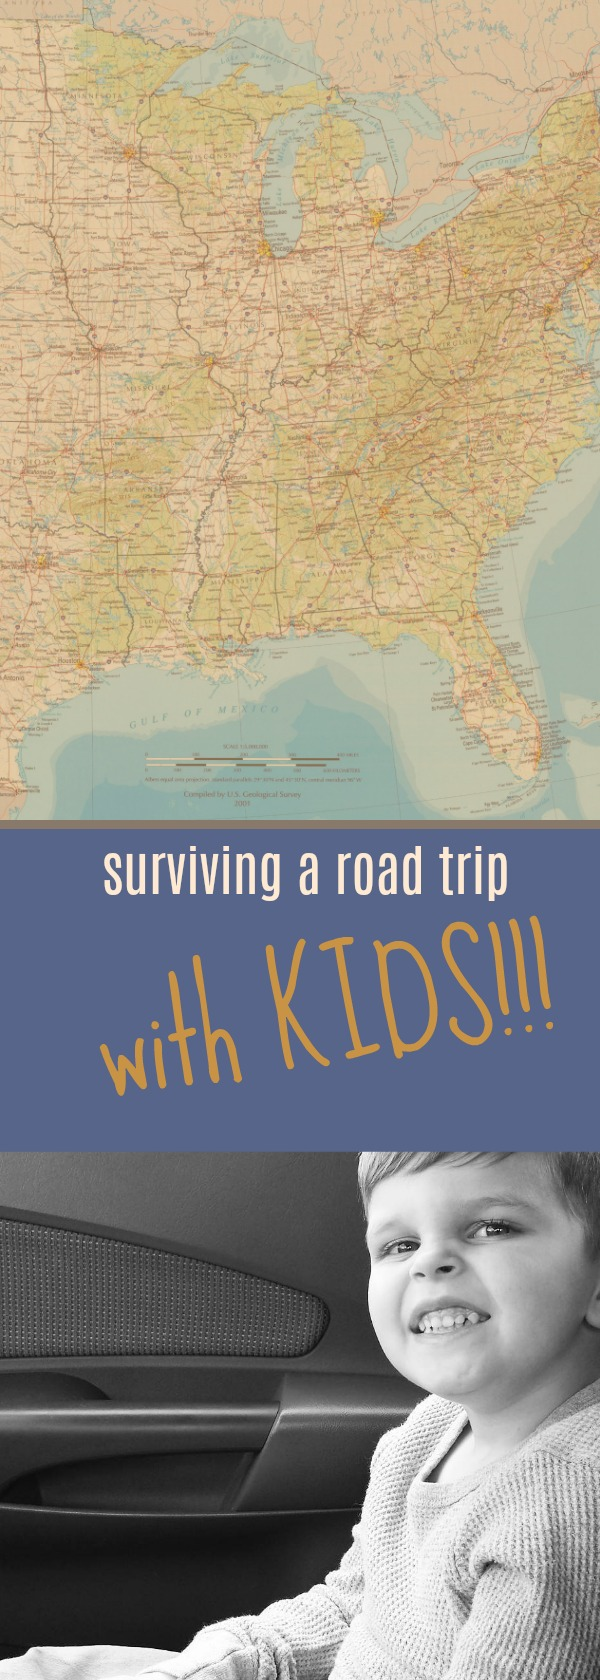 How To Not Go Crazy During a Road Trip With Kids from @FunAsYouGrow